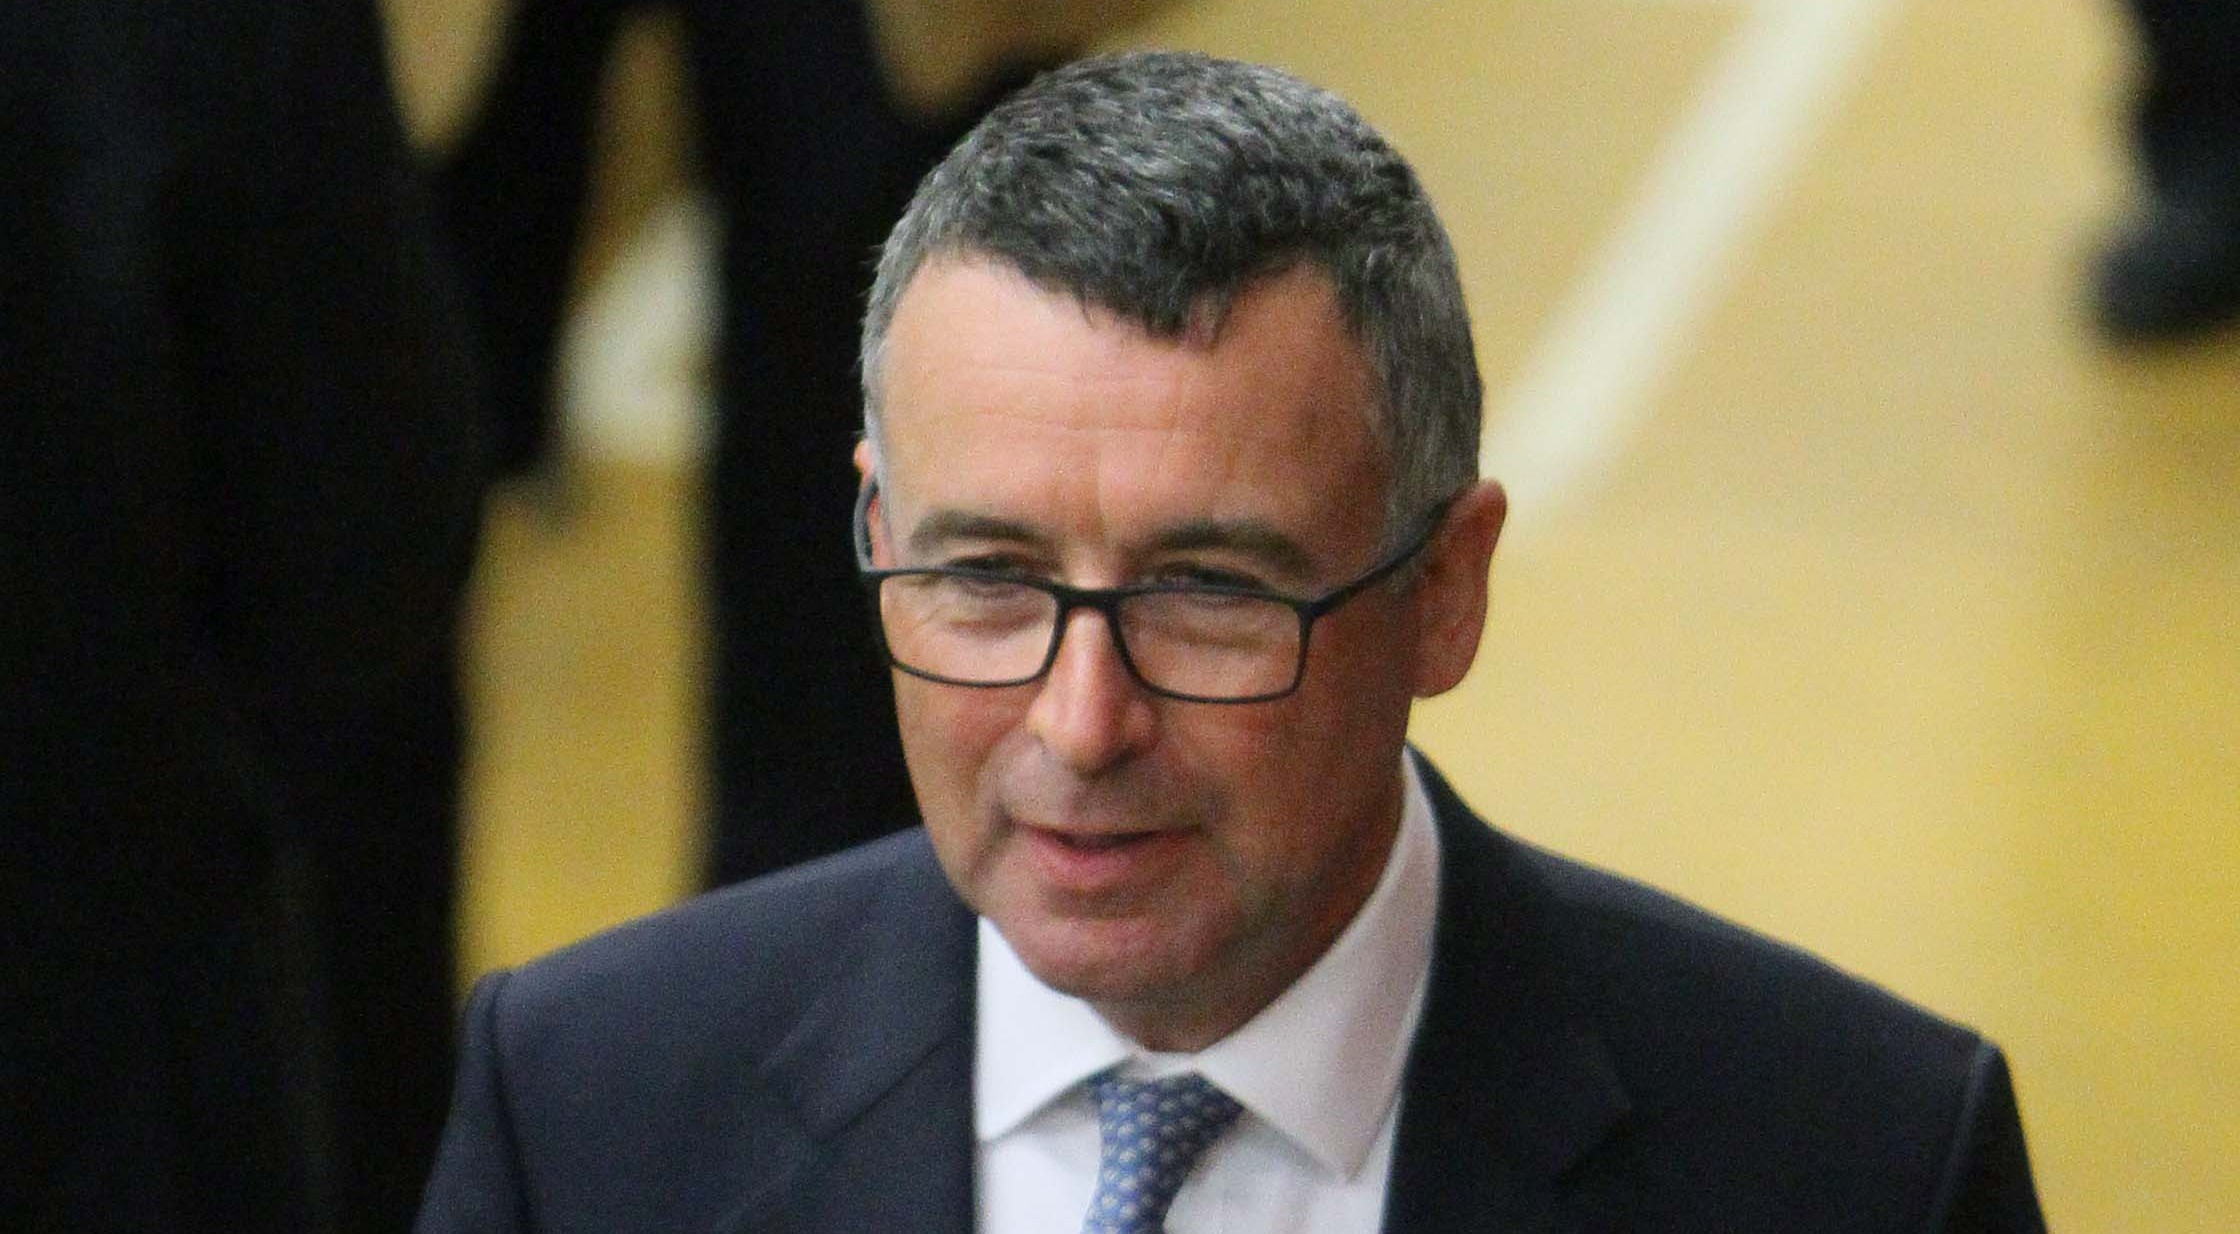 Bernard Jenkin questioned the performance of Treasury officials